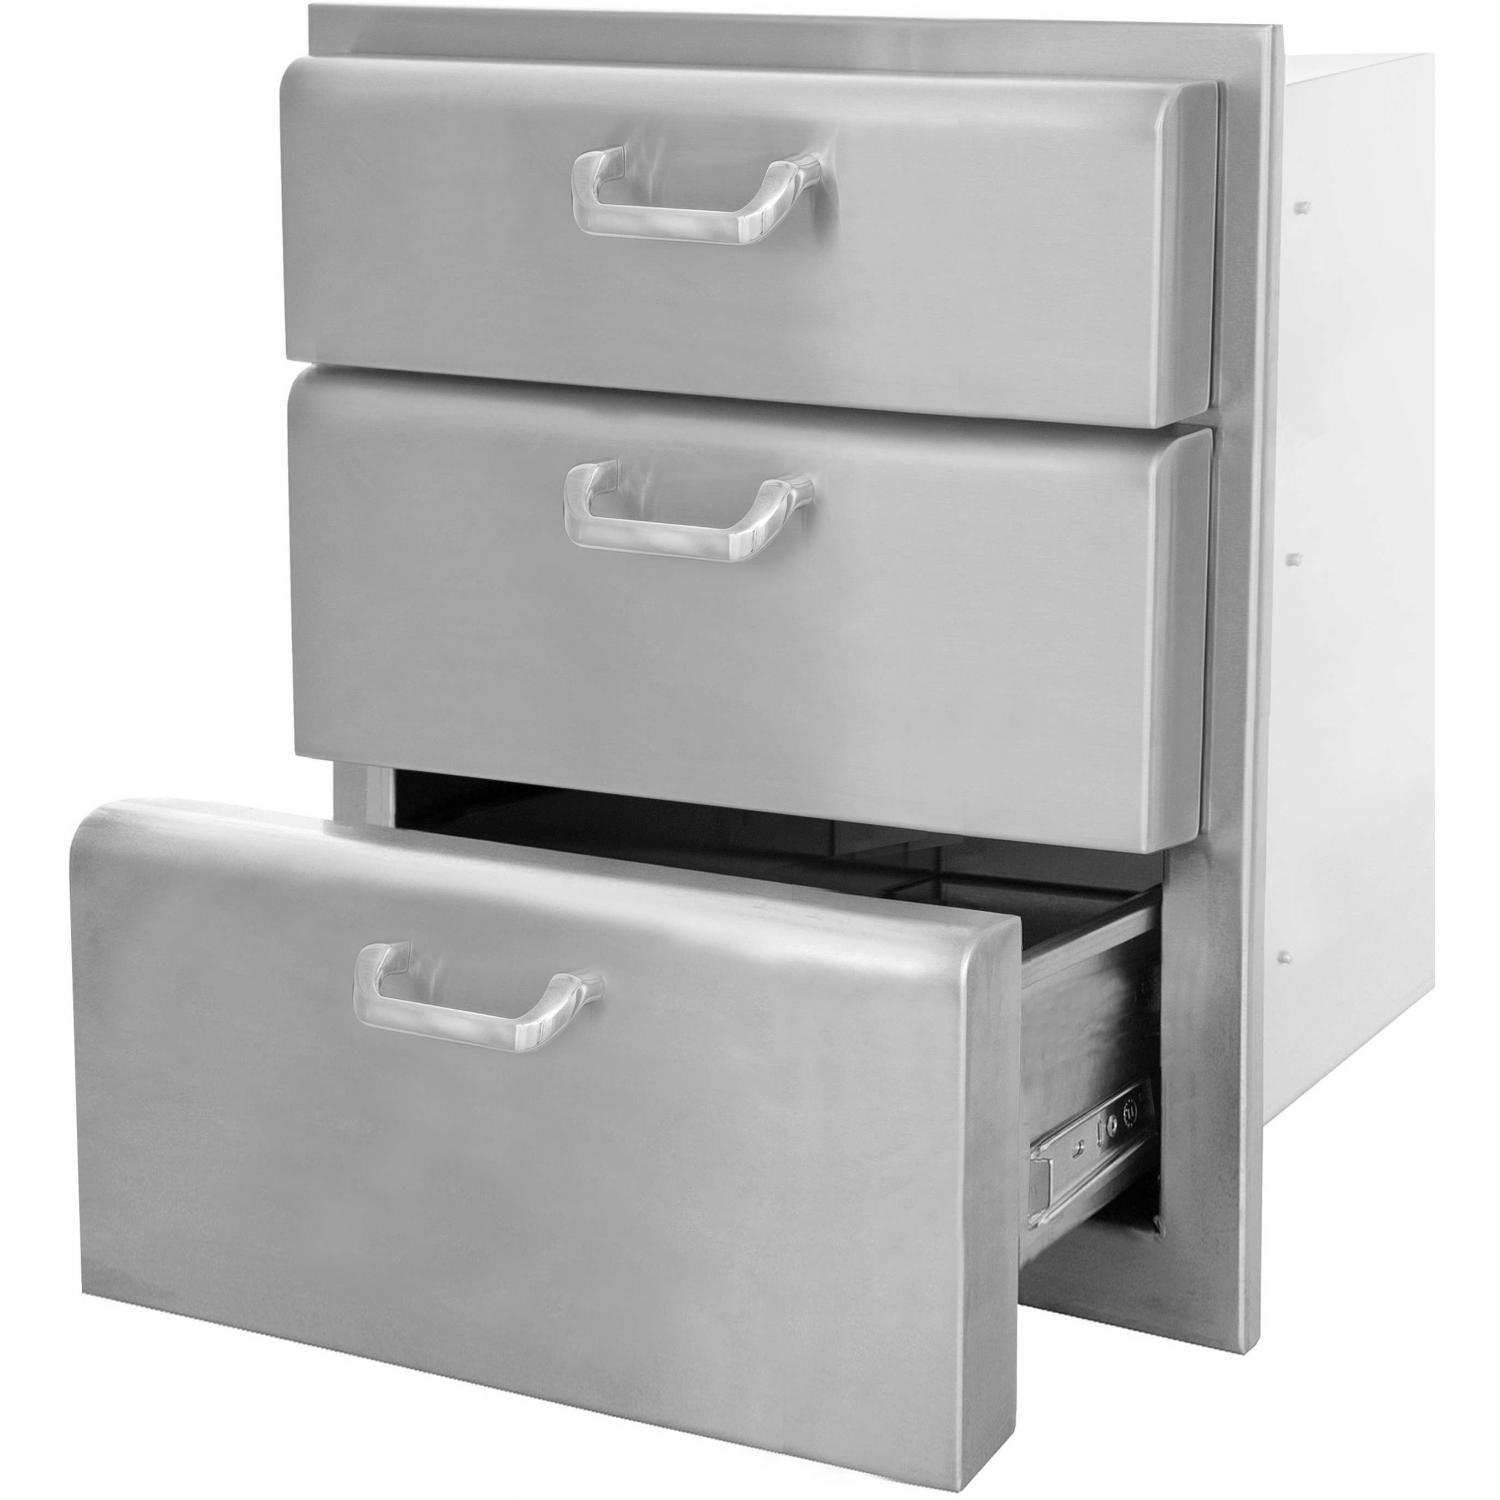 Picture of BBQGuys.com Kingston Raised Series 20 Inch Stainless Steel Triple Access Drawer